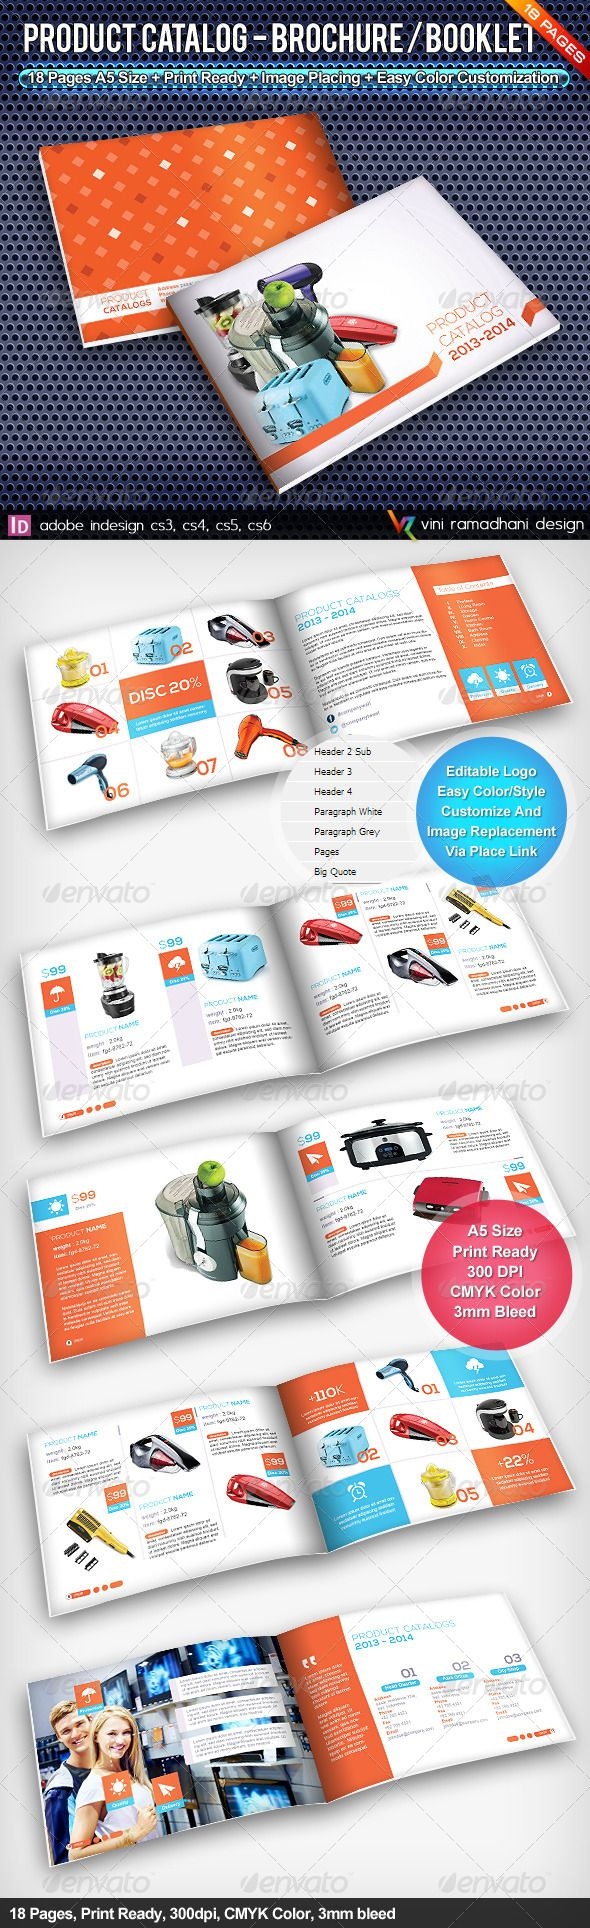 Product Catalogs Brochure Or Booklet - Catalogs Brochures